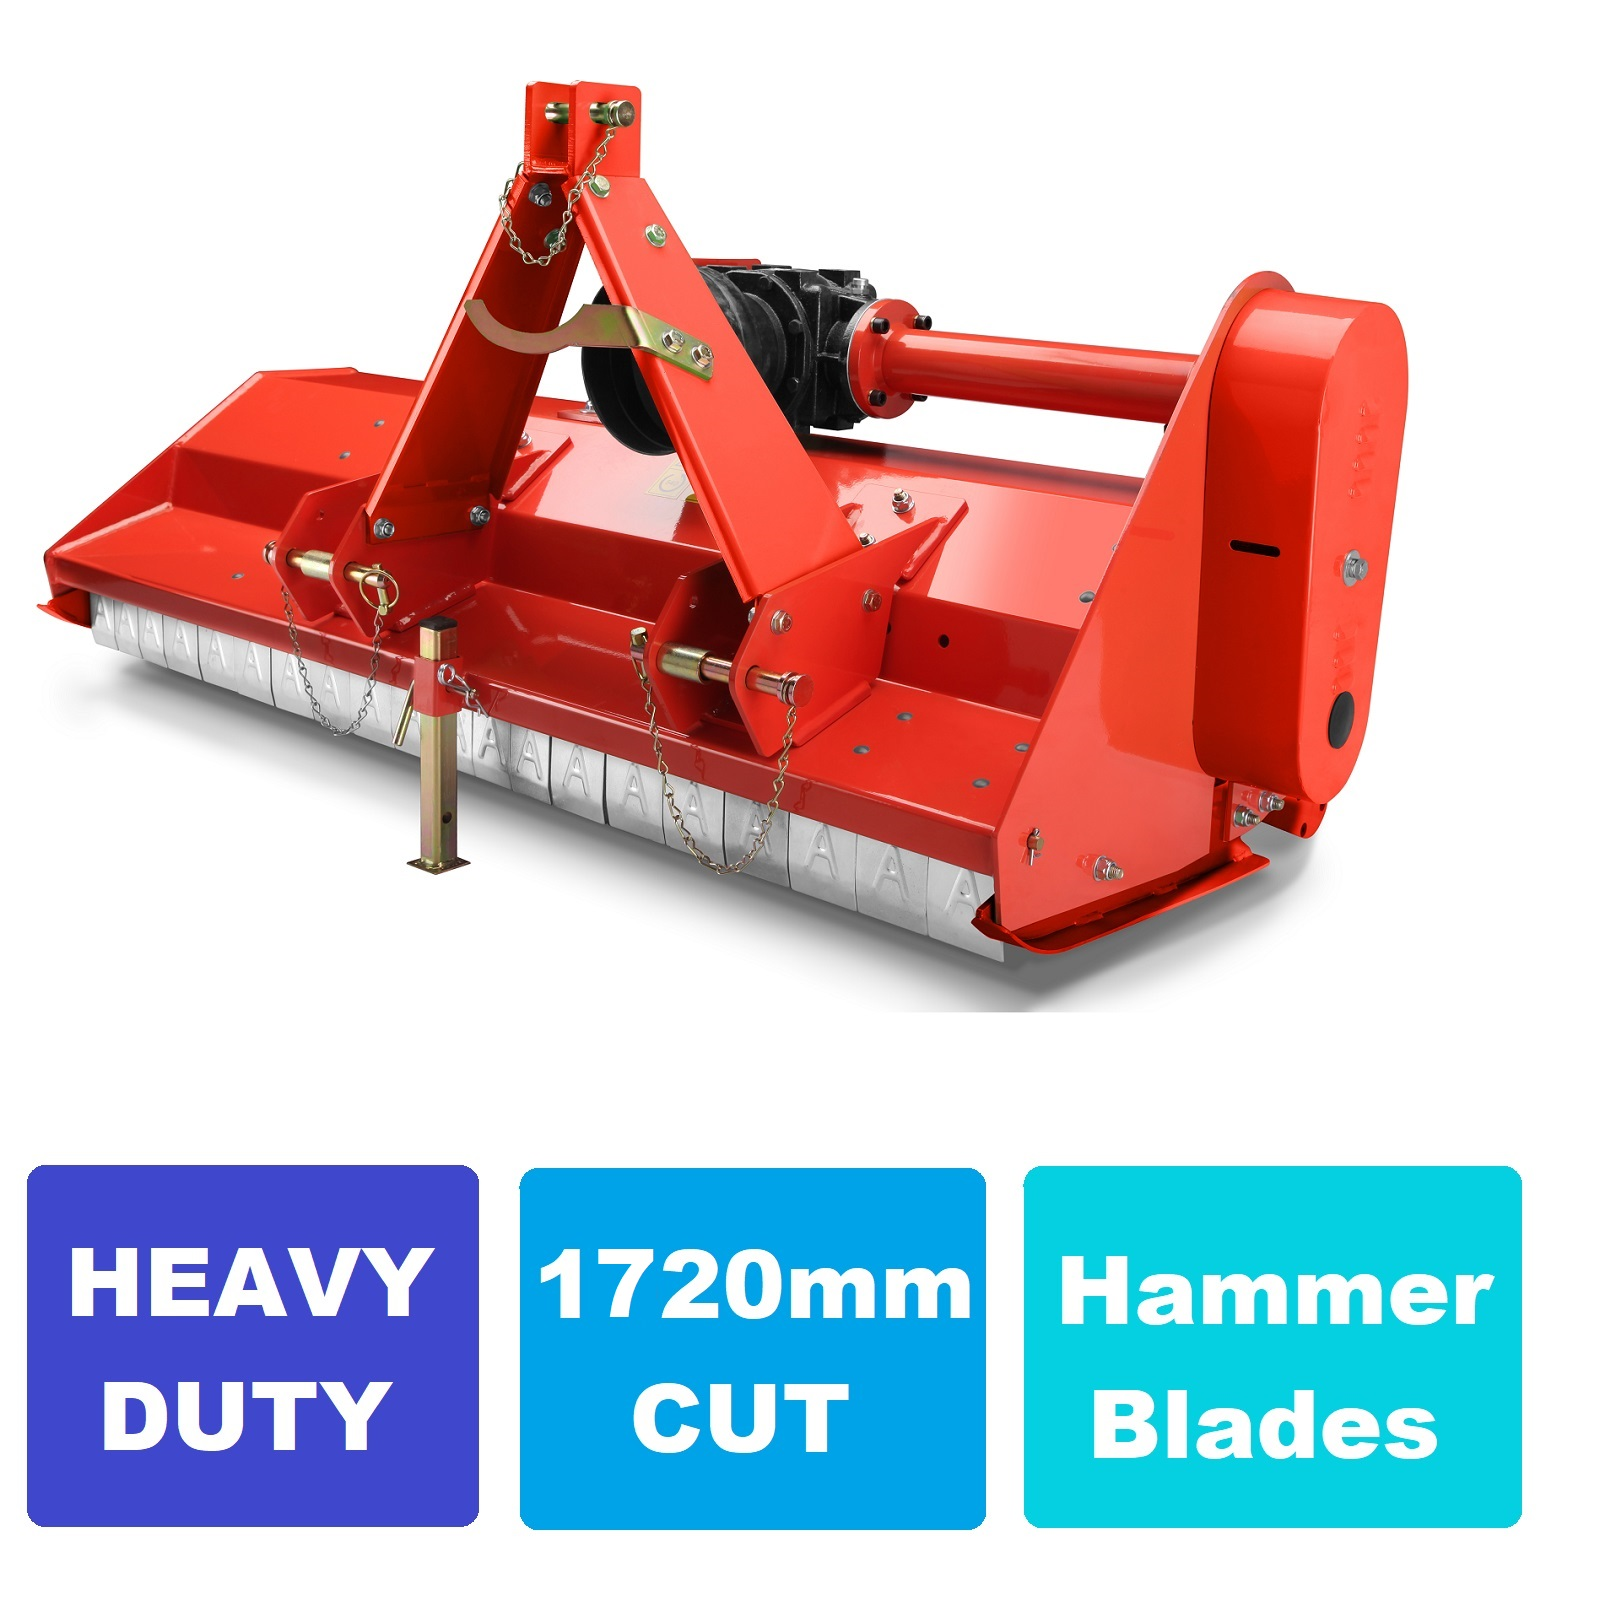 Details about Flail Mower 5 5 ft Tractor Mulcher Heavy Duty 1720mm with  hammer blades slasher